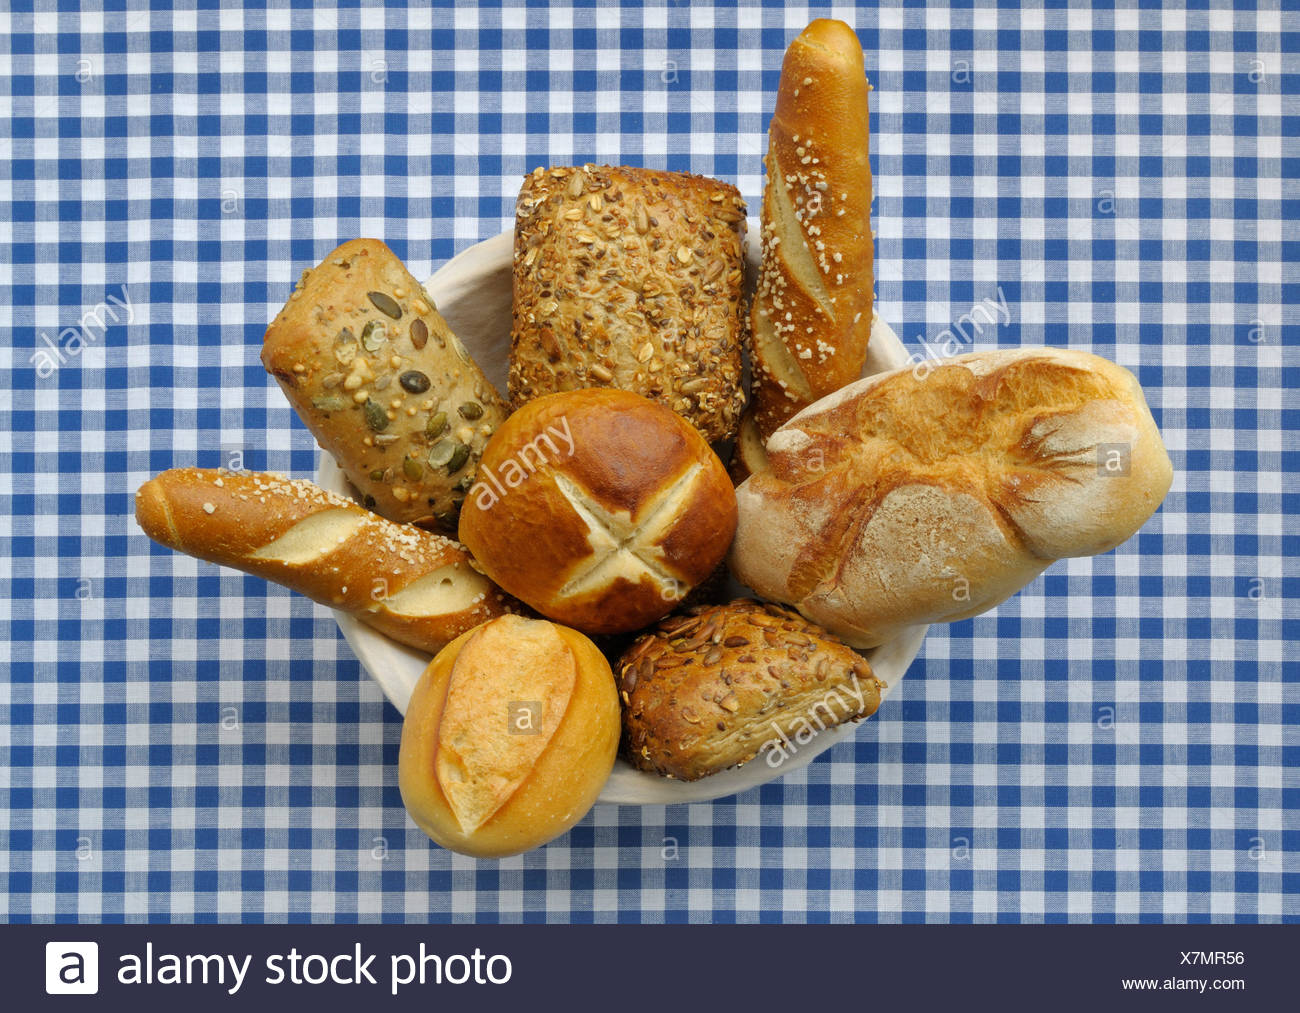 Bread basket filled with different kinds of rolls and lye rolls on a blue and white checked table cloth - Stock Image